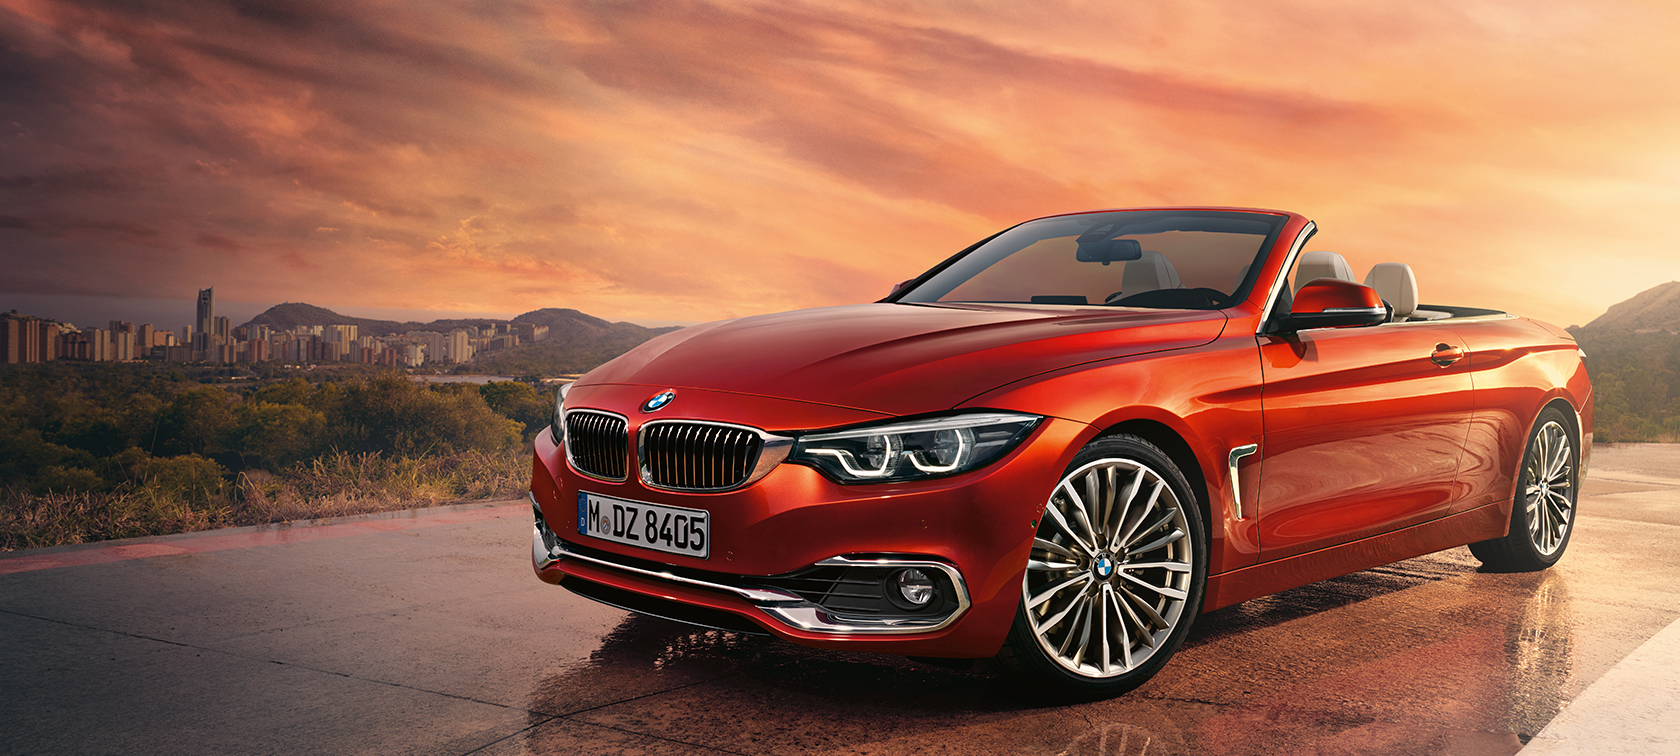 Bmw 4er Cabrio Design Bmw At